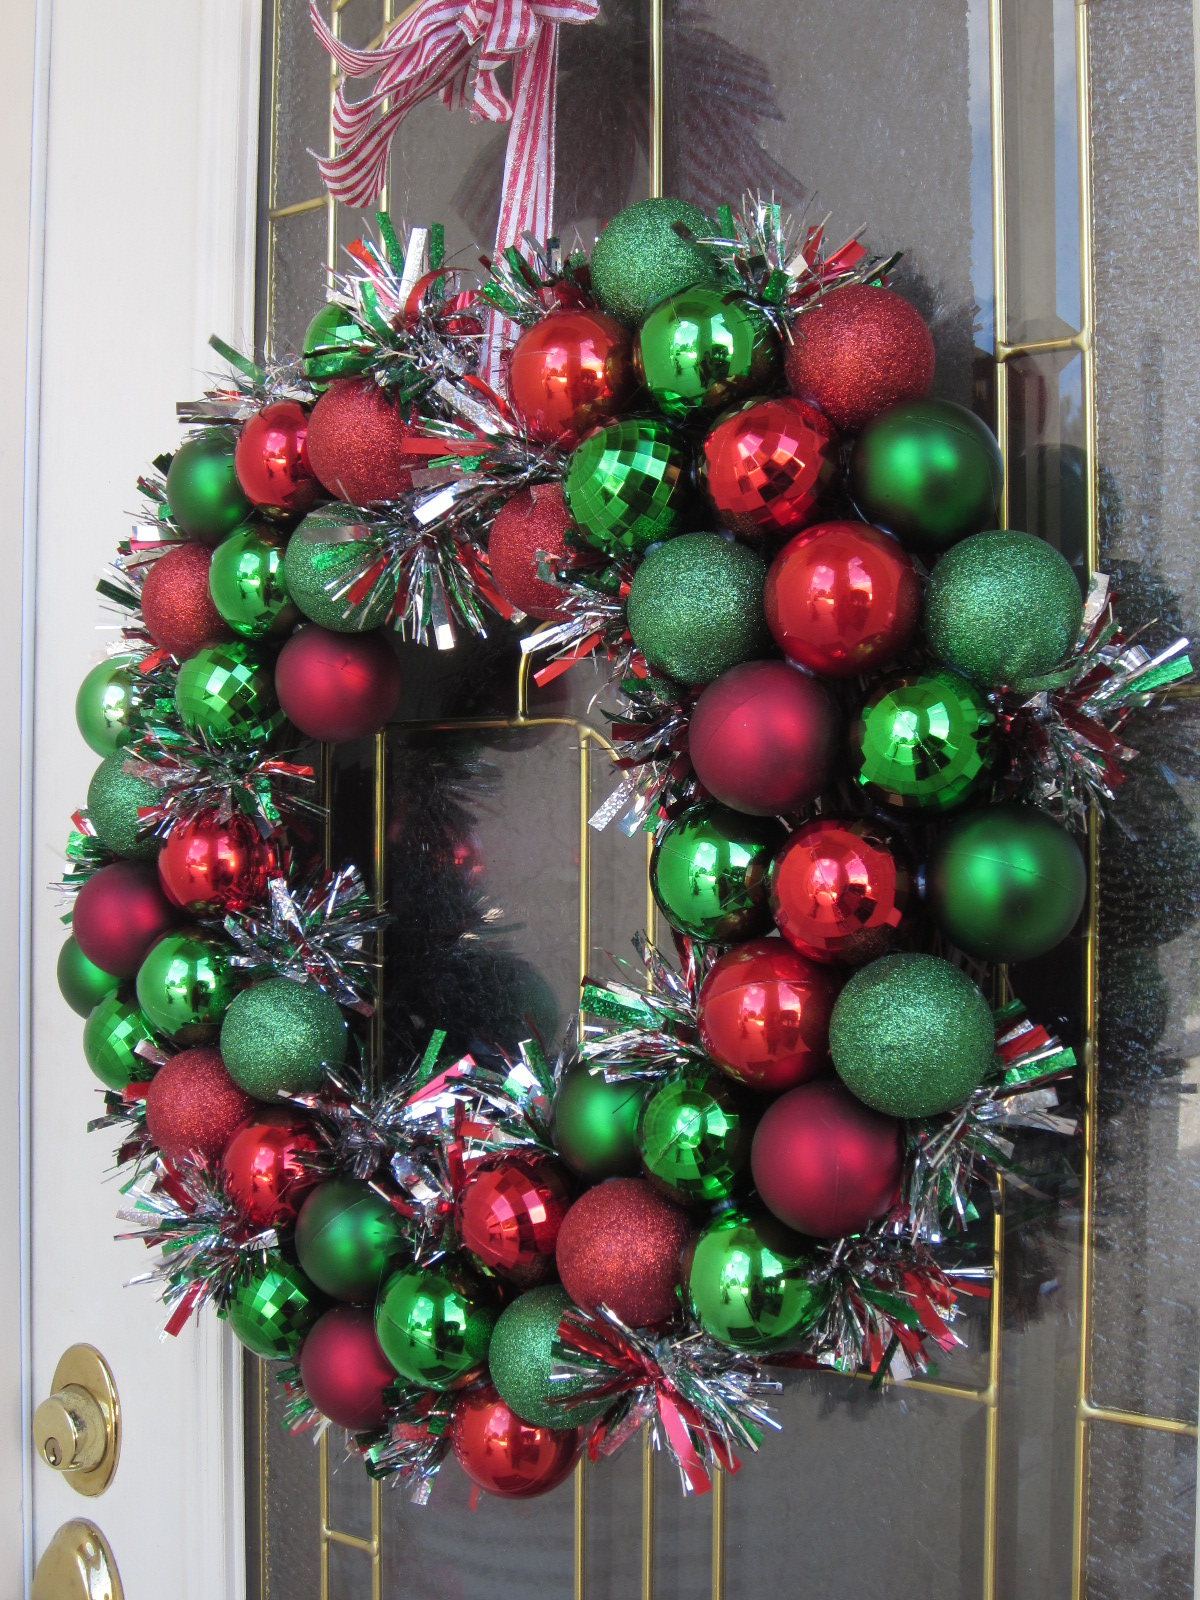 Sparkly Christmas Wreath Nest Handmade: making wreaths